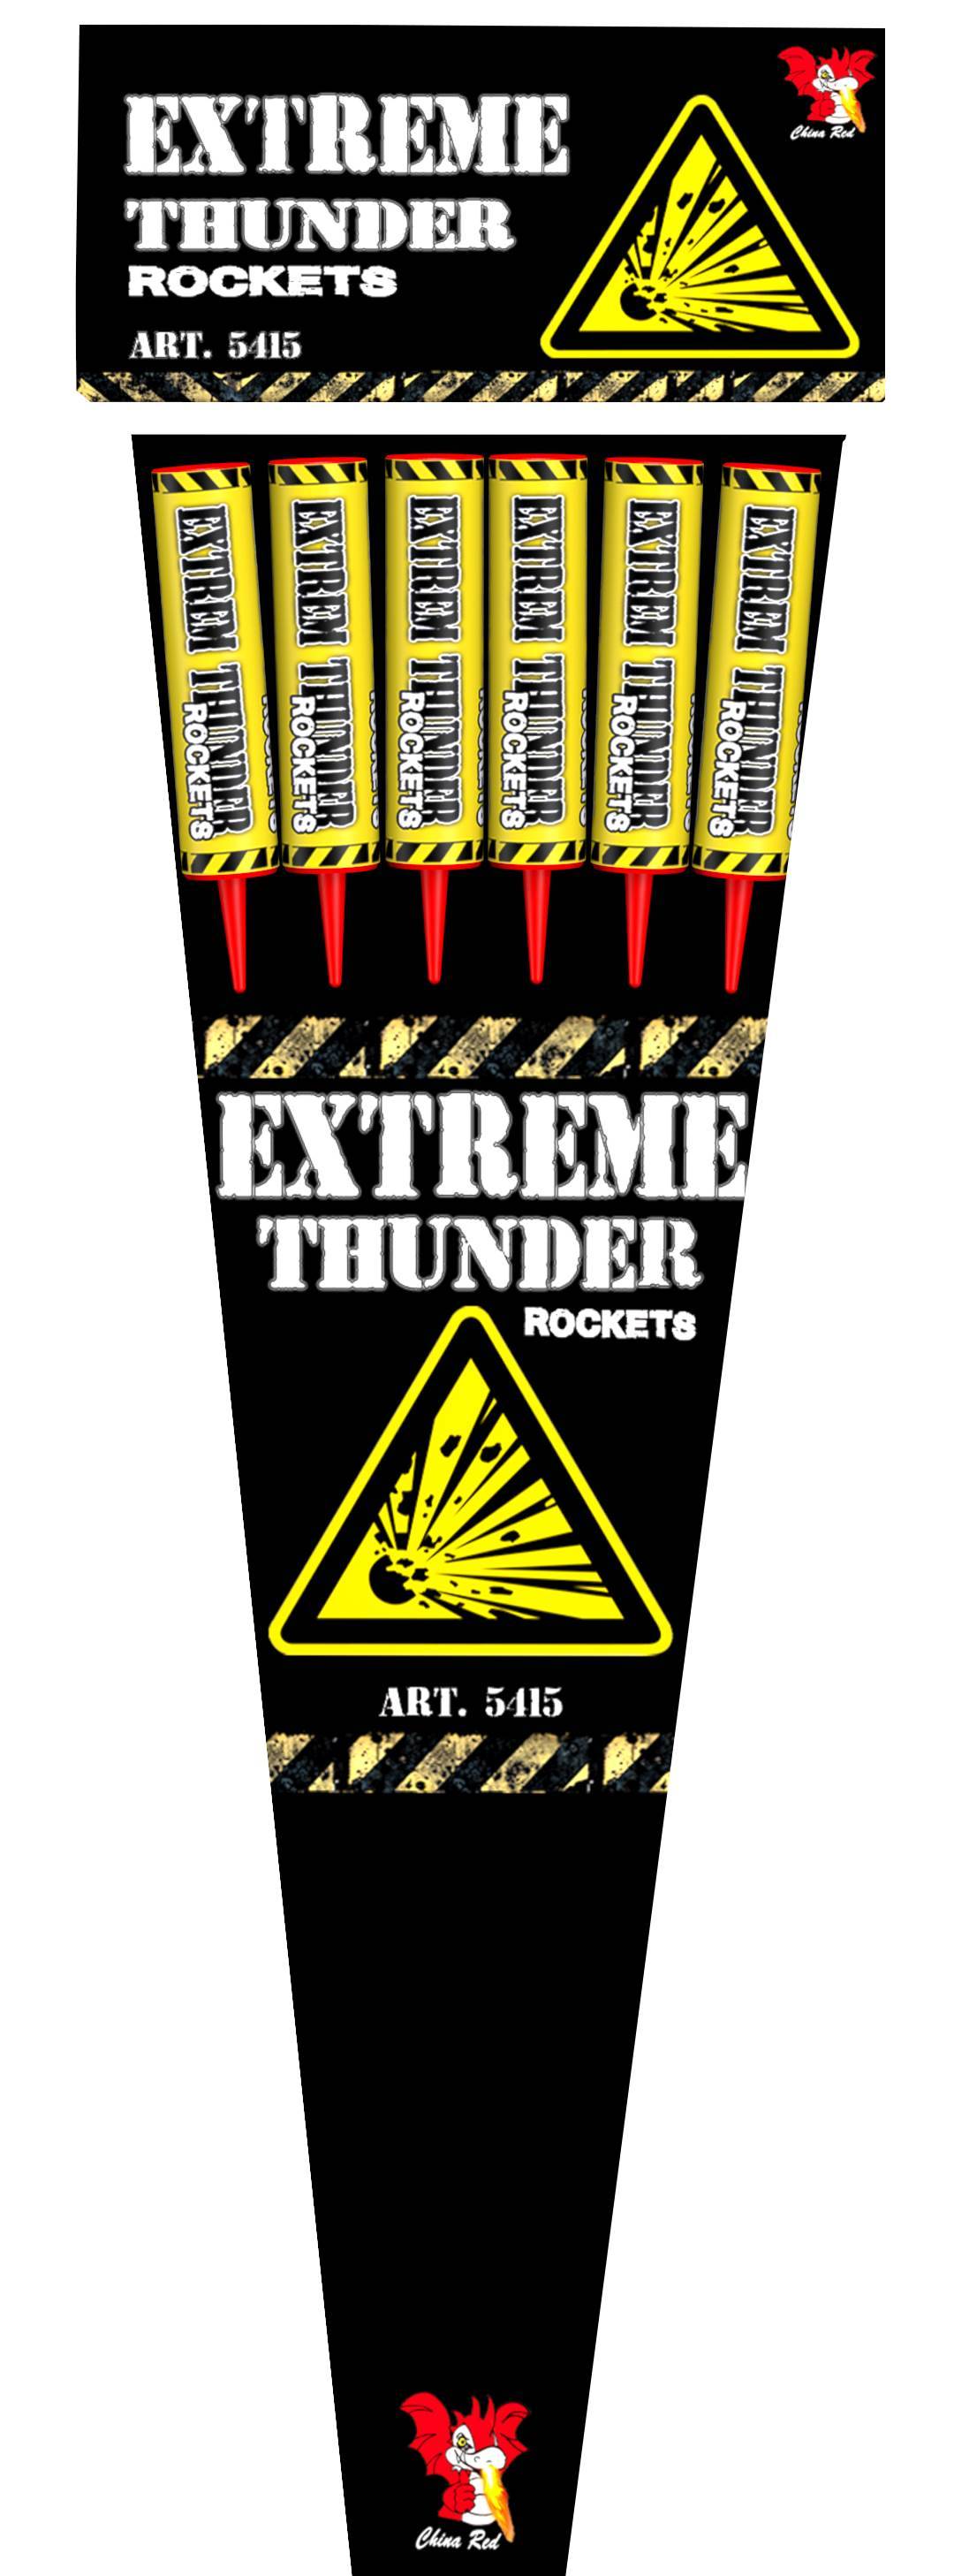 Extreme thunder rockets knalpijlen keihard ky4706 china for Intratuin enschede